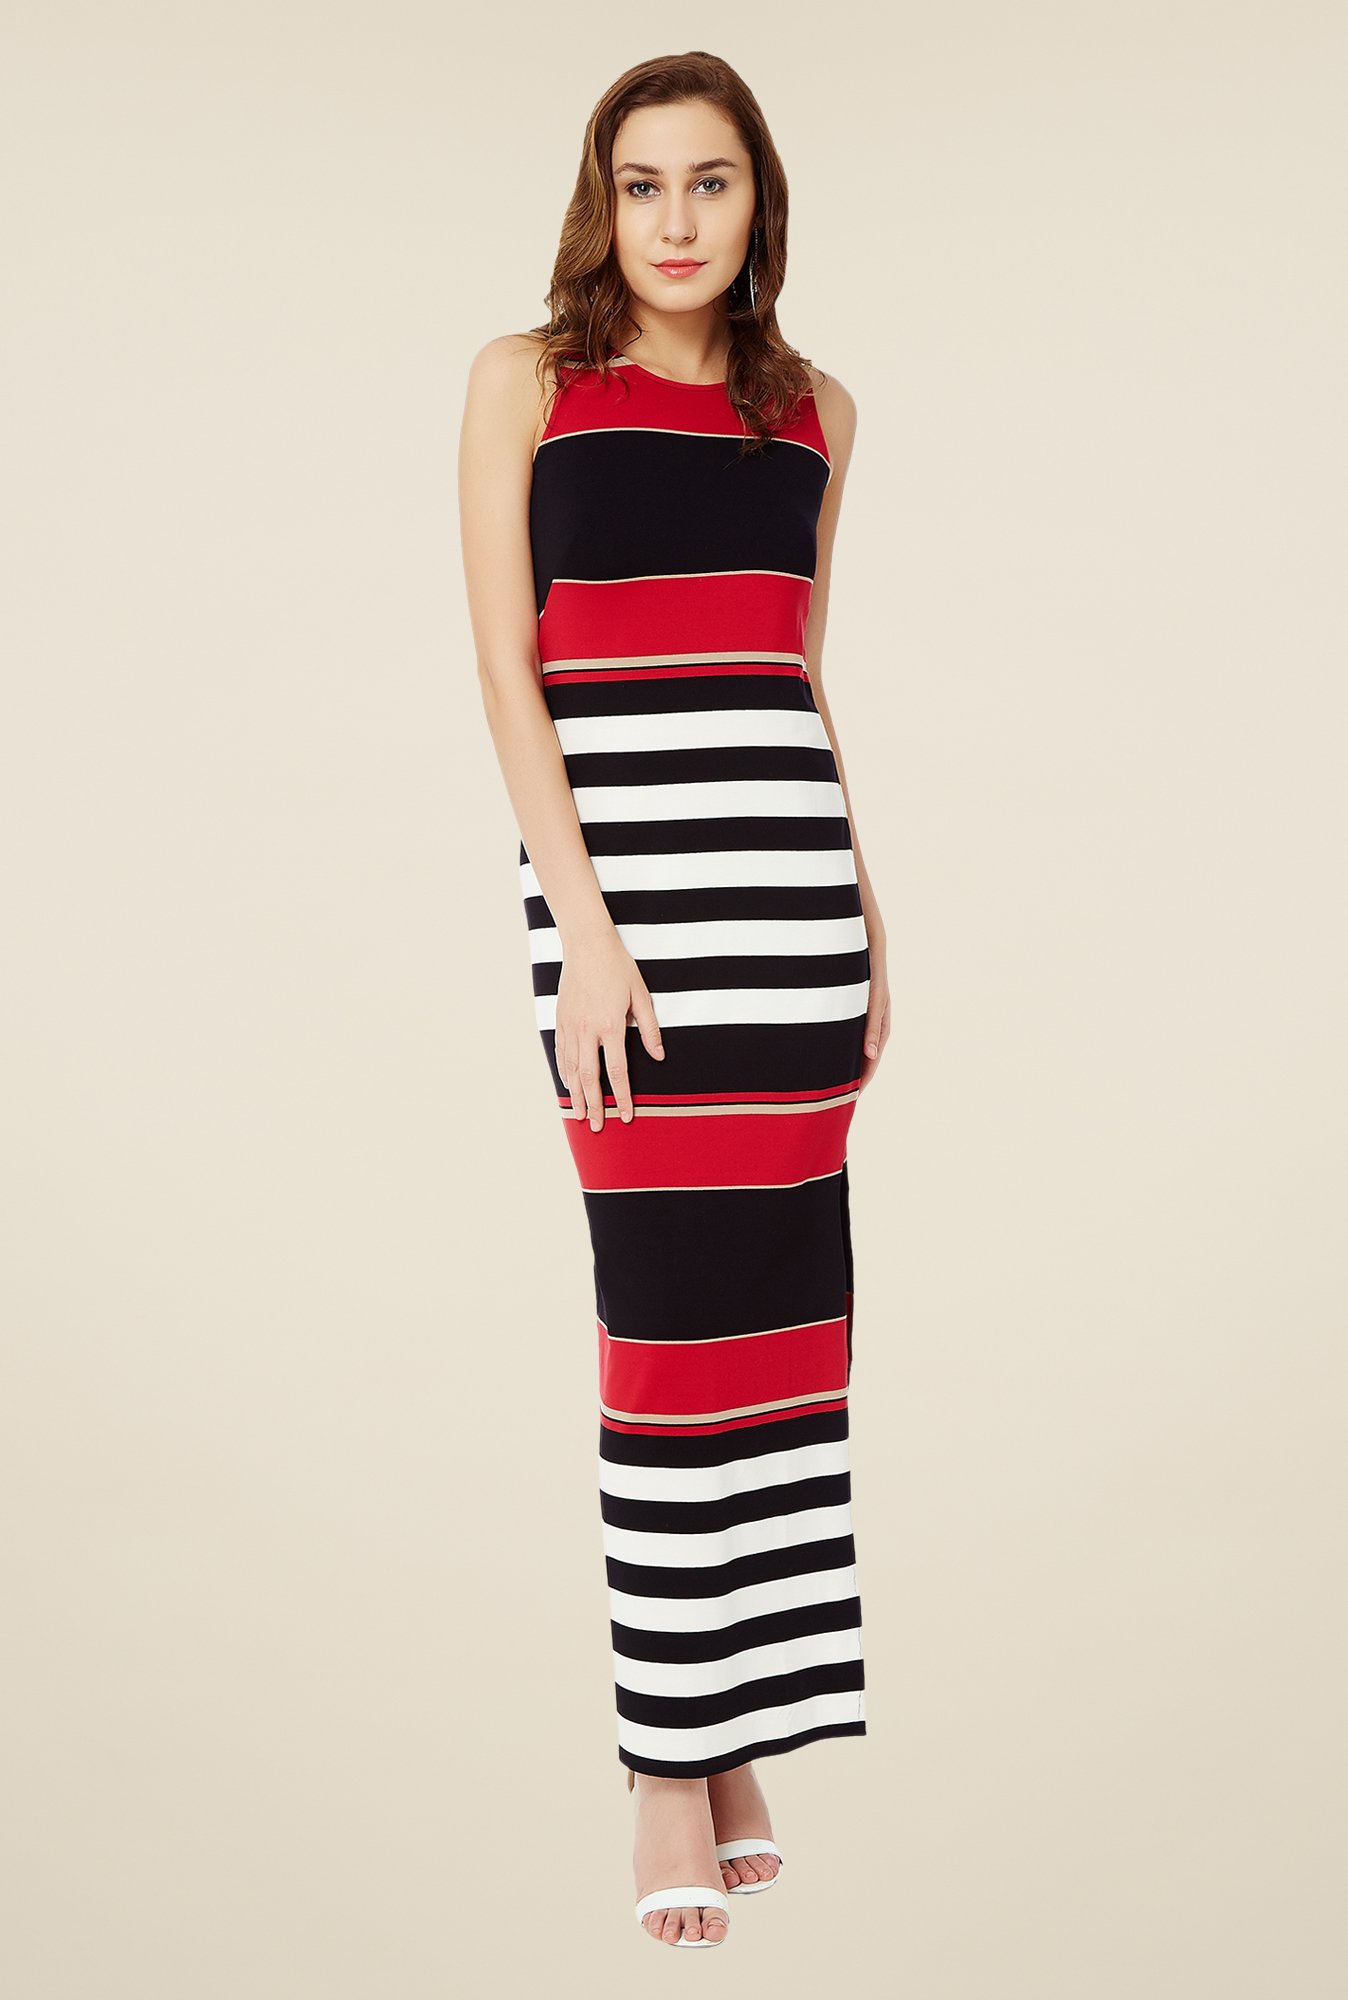 Avirate Black Striped Dress